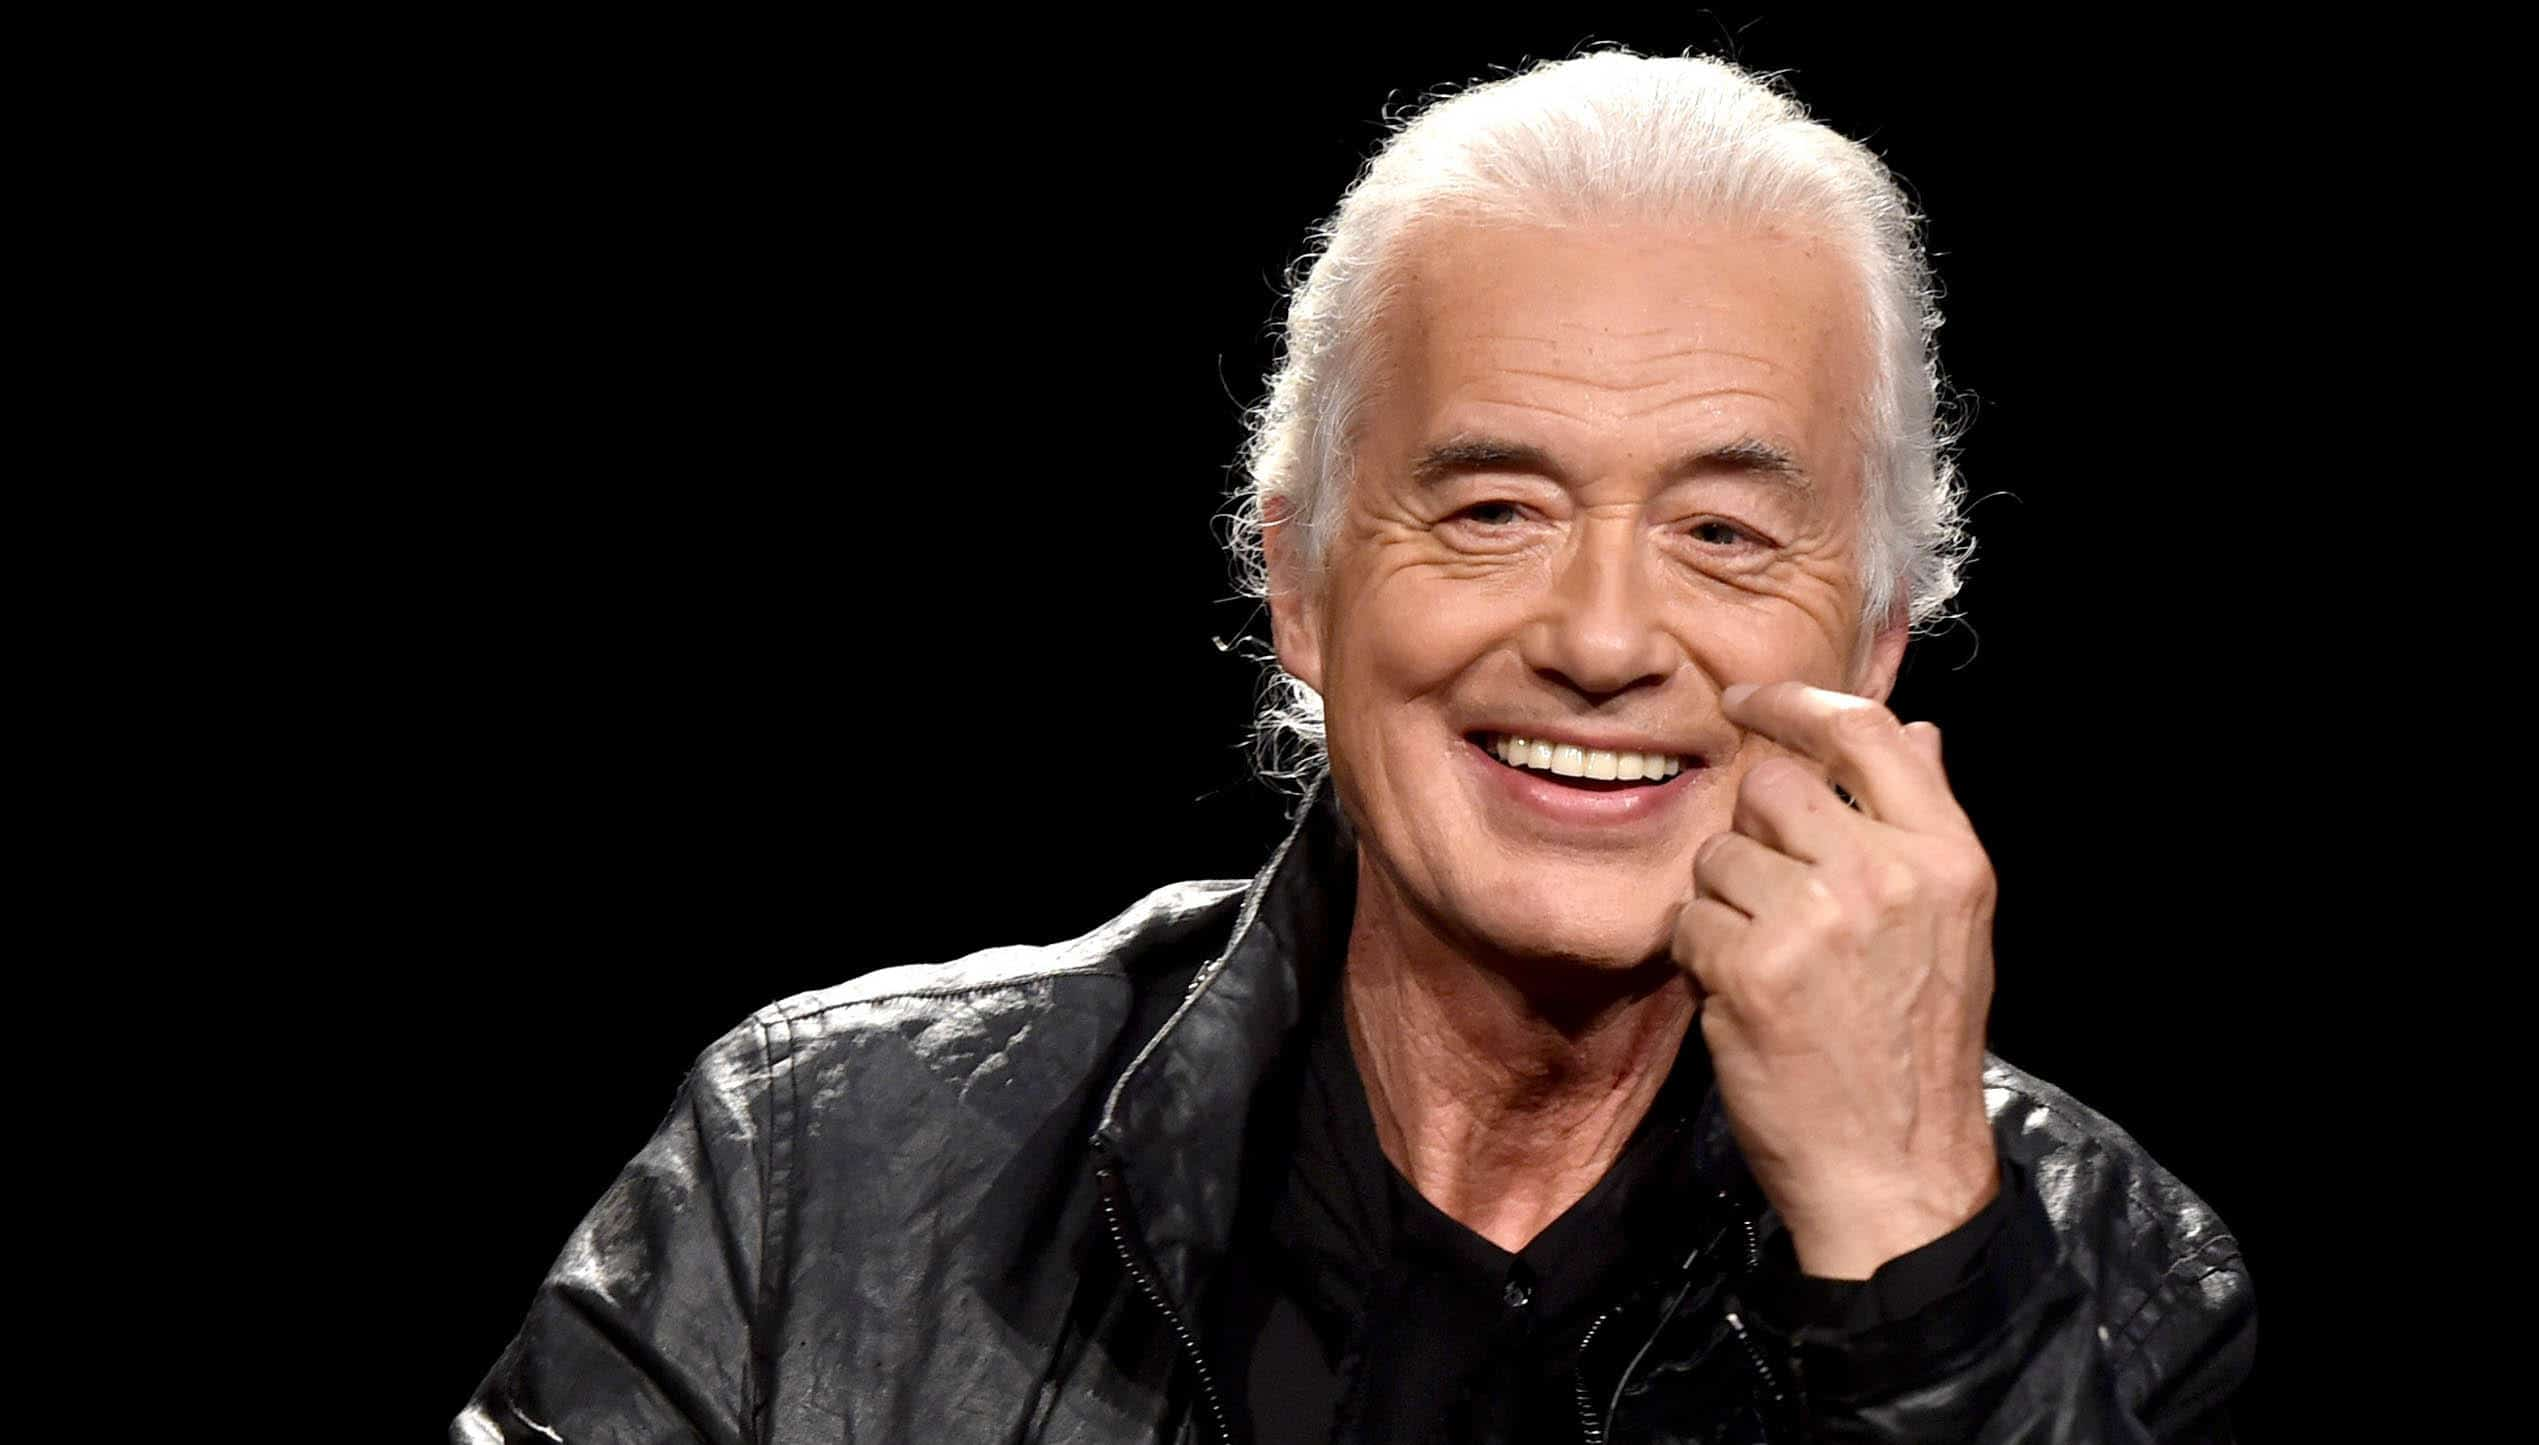 an happy face of the song writer and producer Jimmy Page